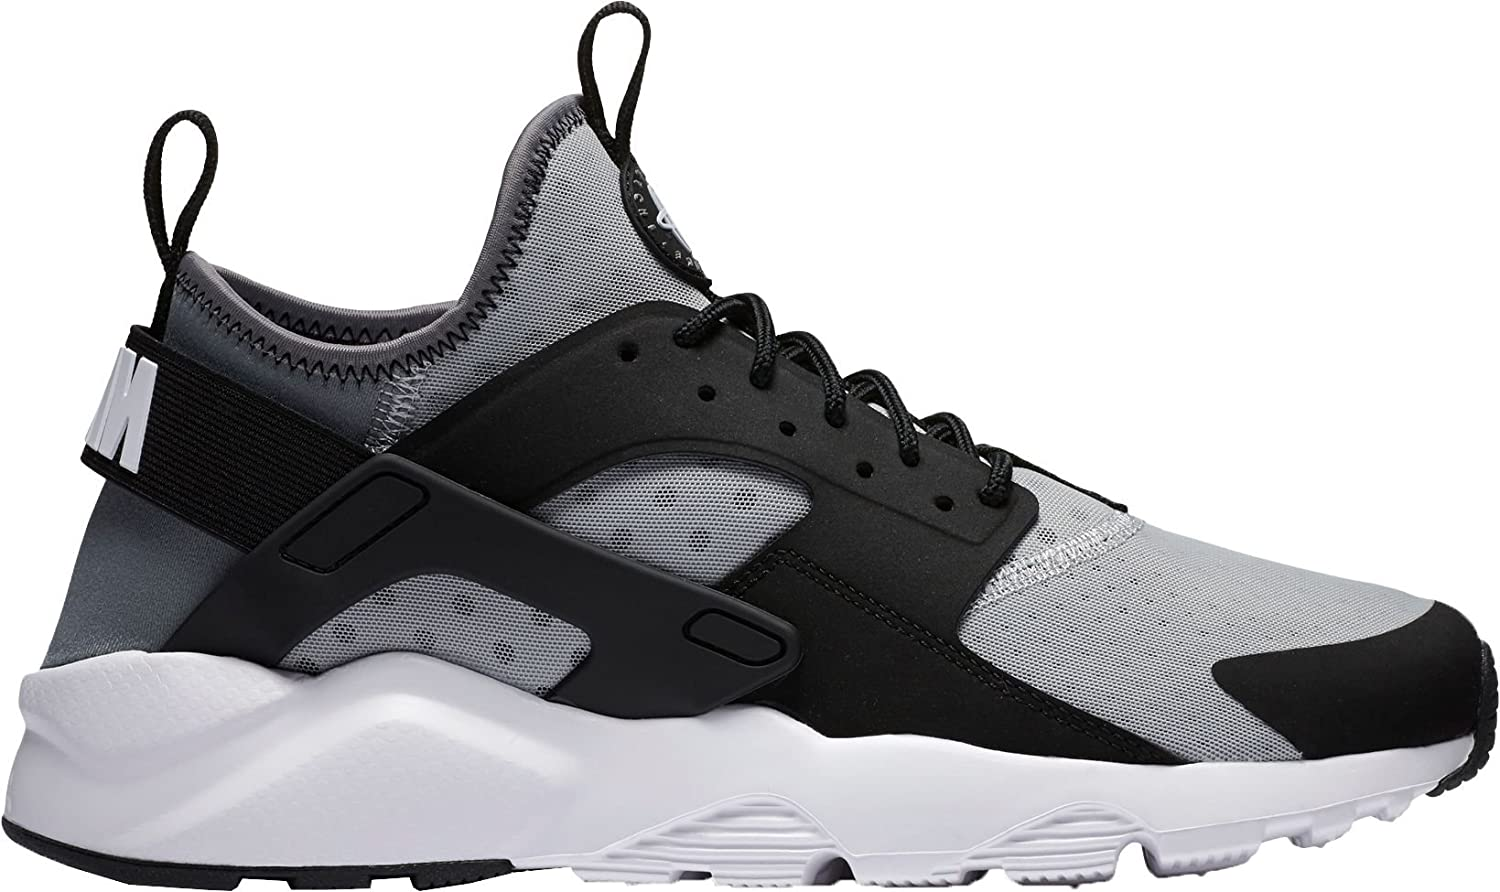 ナイキ シューズ スニーカー Nike Men's Air Huarache Run Ultra Shoes GreyWhite [並行輸入品] B074CM4ZTV